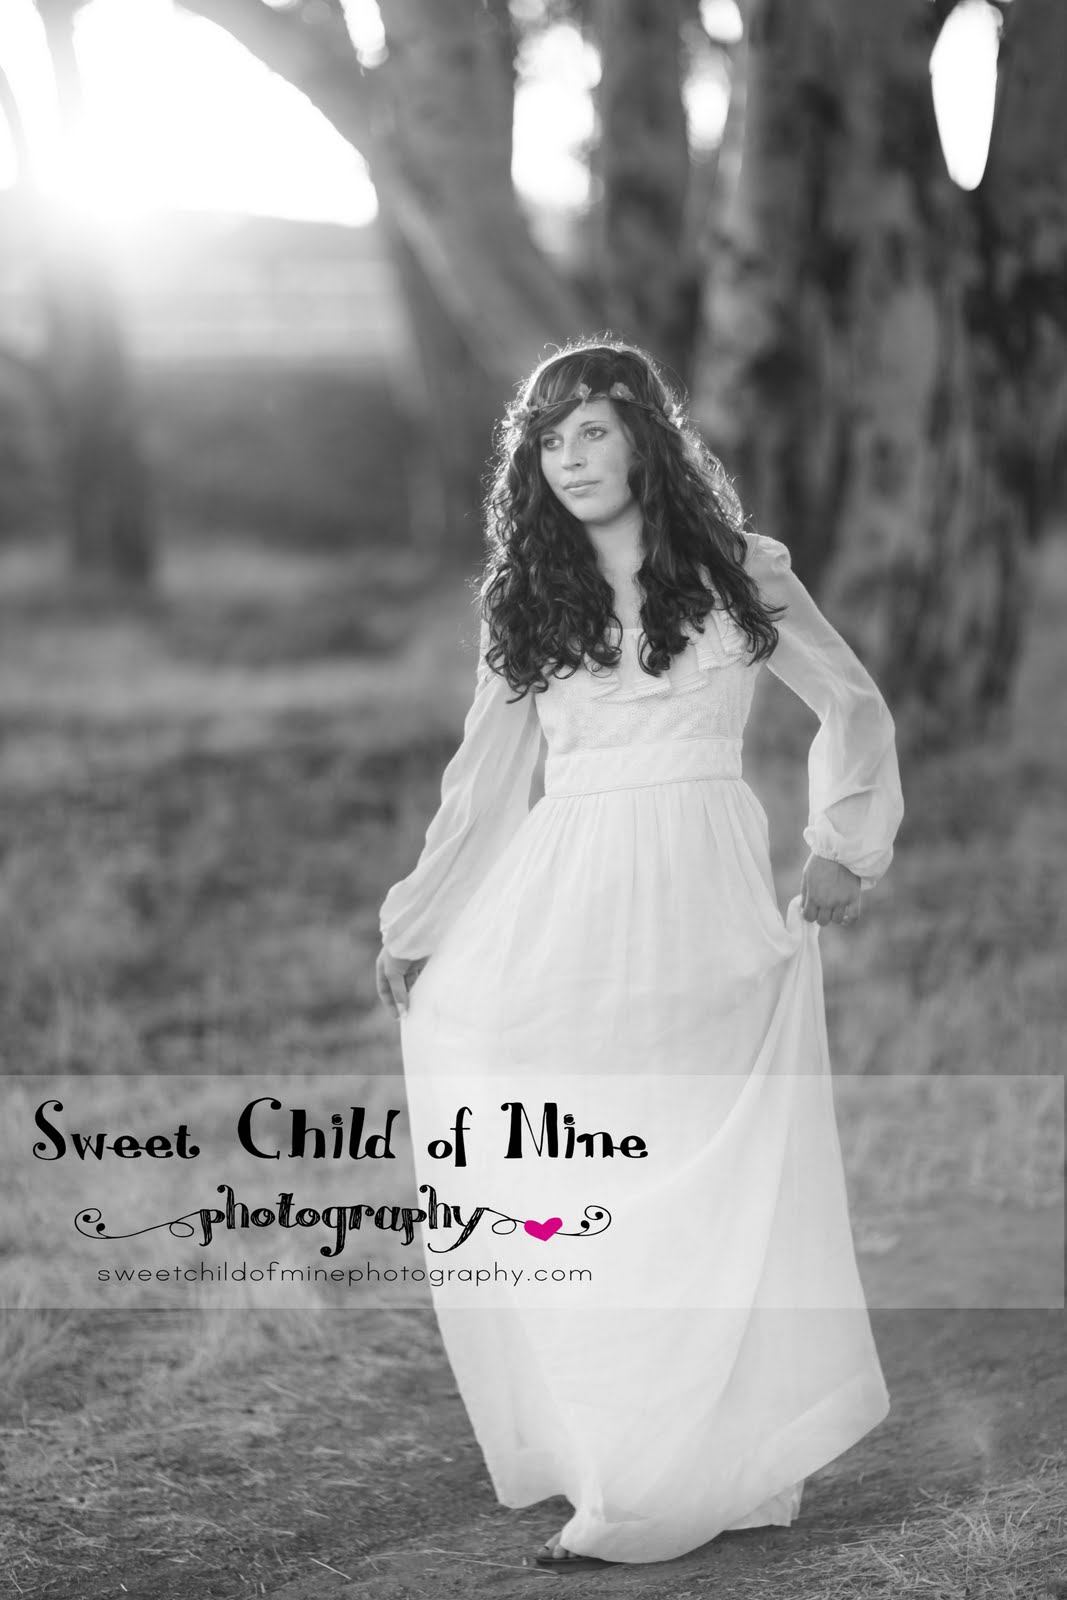 Sweet Child of Mine Photography: September 2010